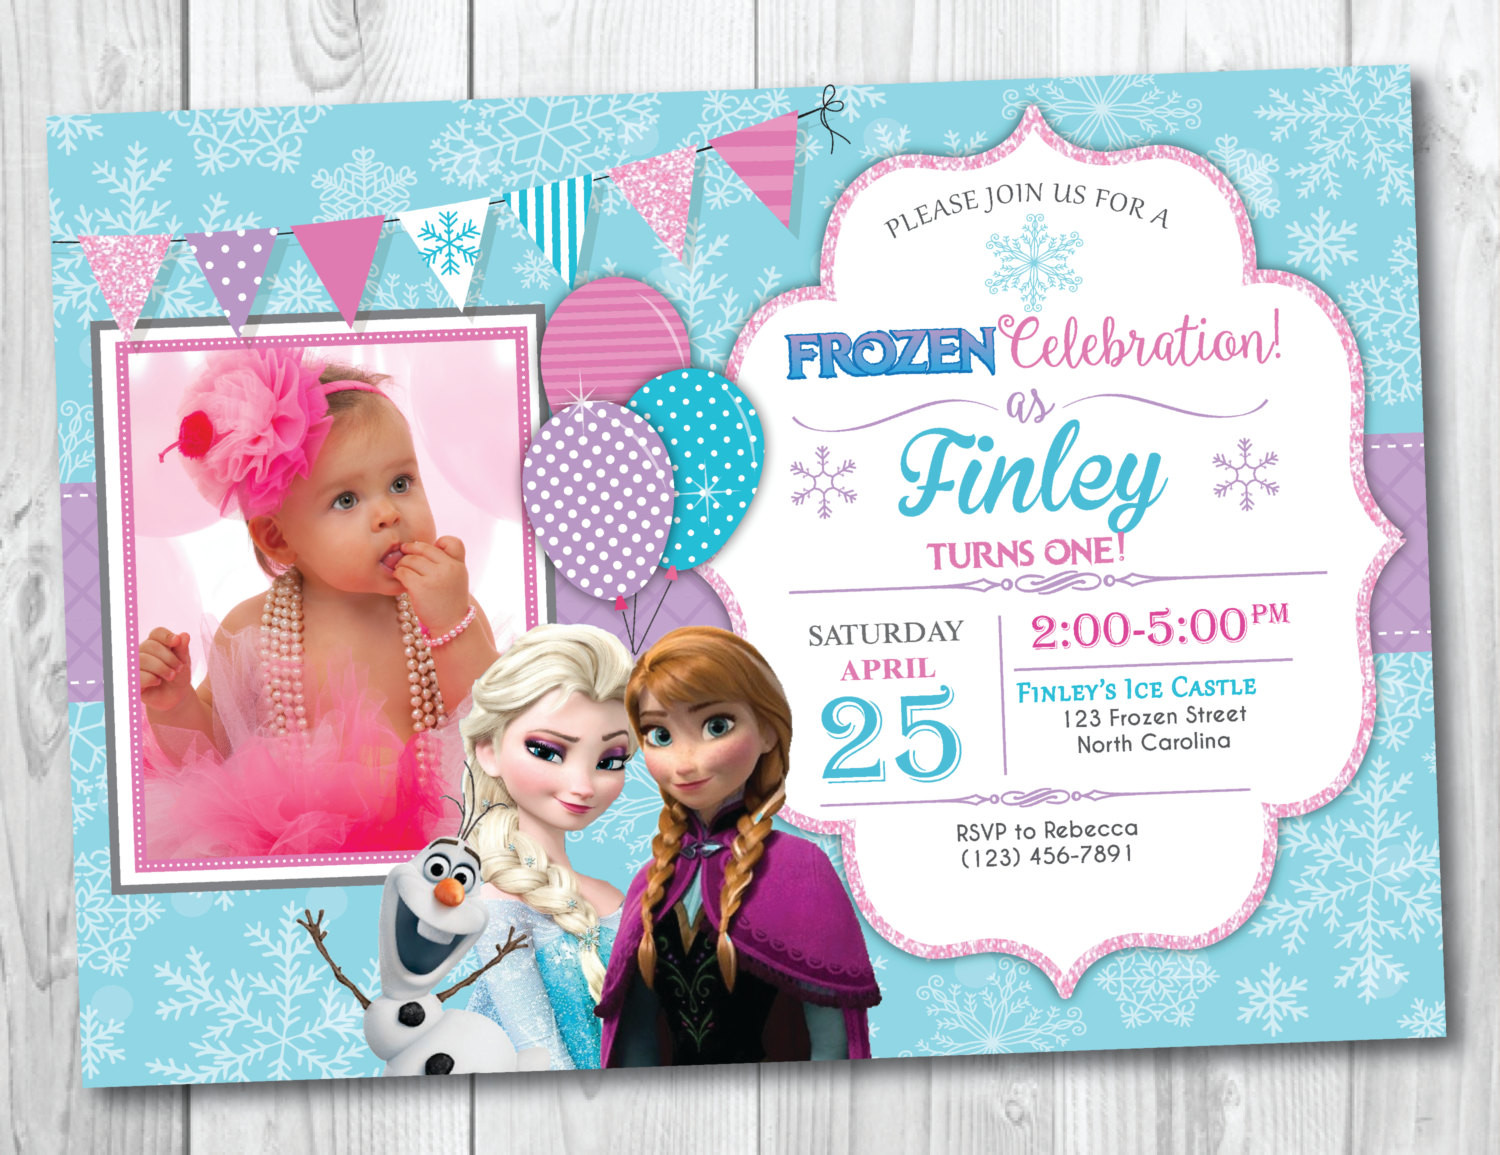 Best ideas about Frozen Birthday Party Invitations . Save or Pin Frozen Birthday Invitation Printable With Frozen Now.